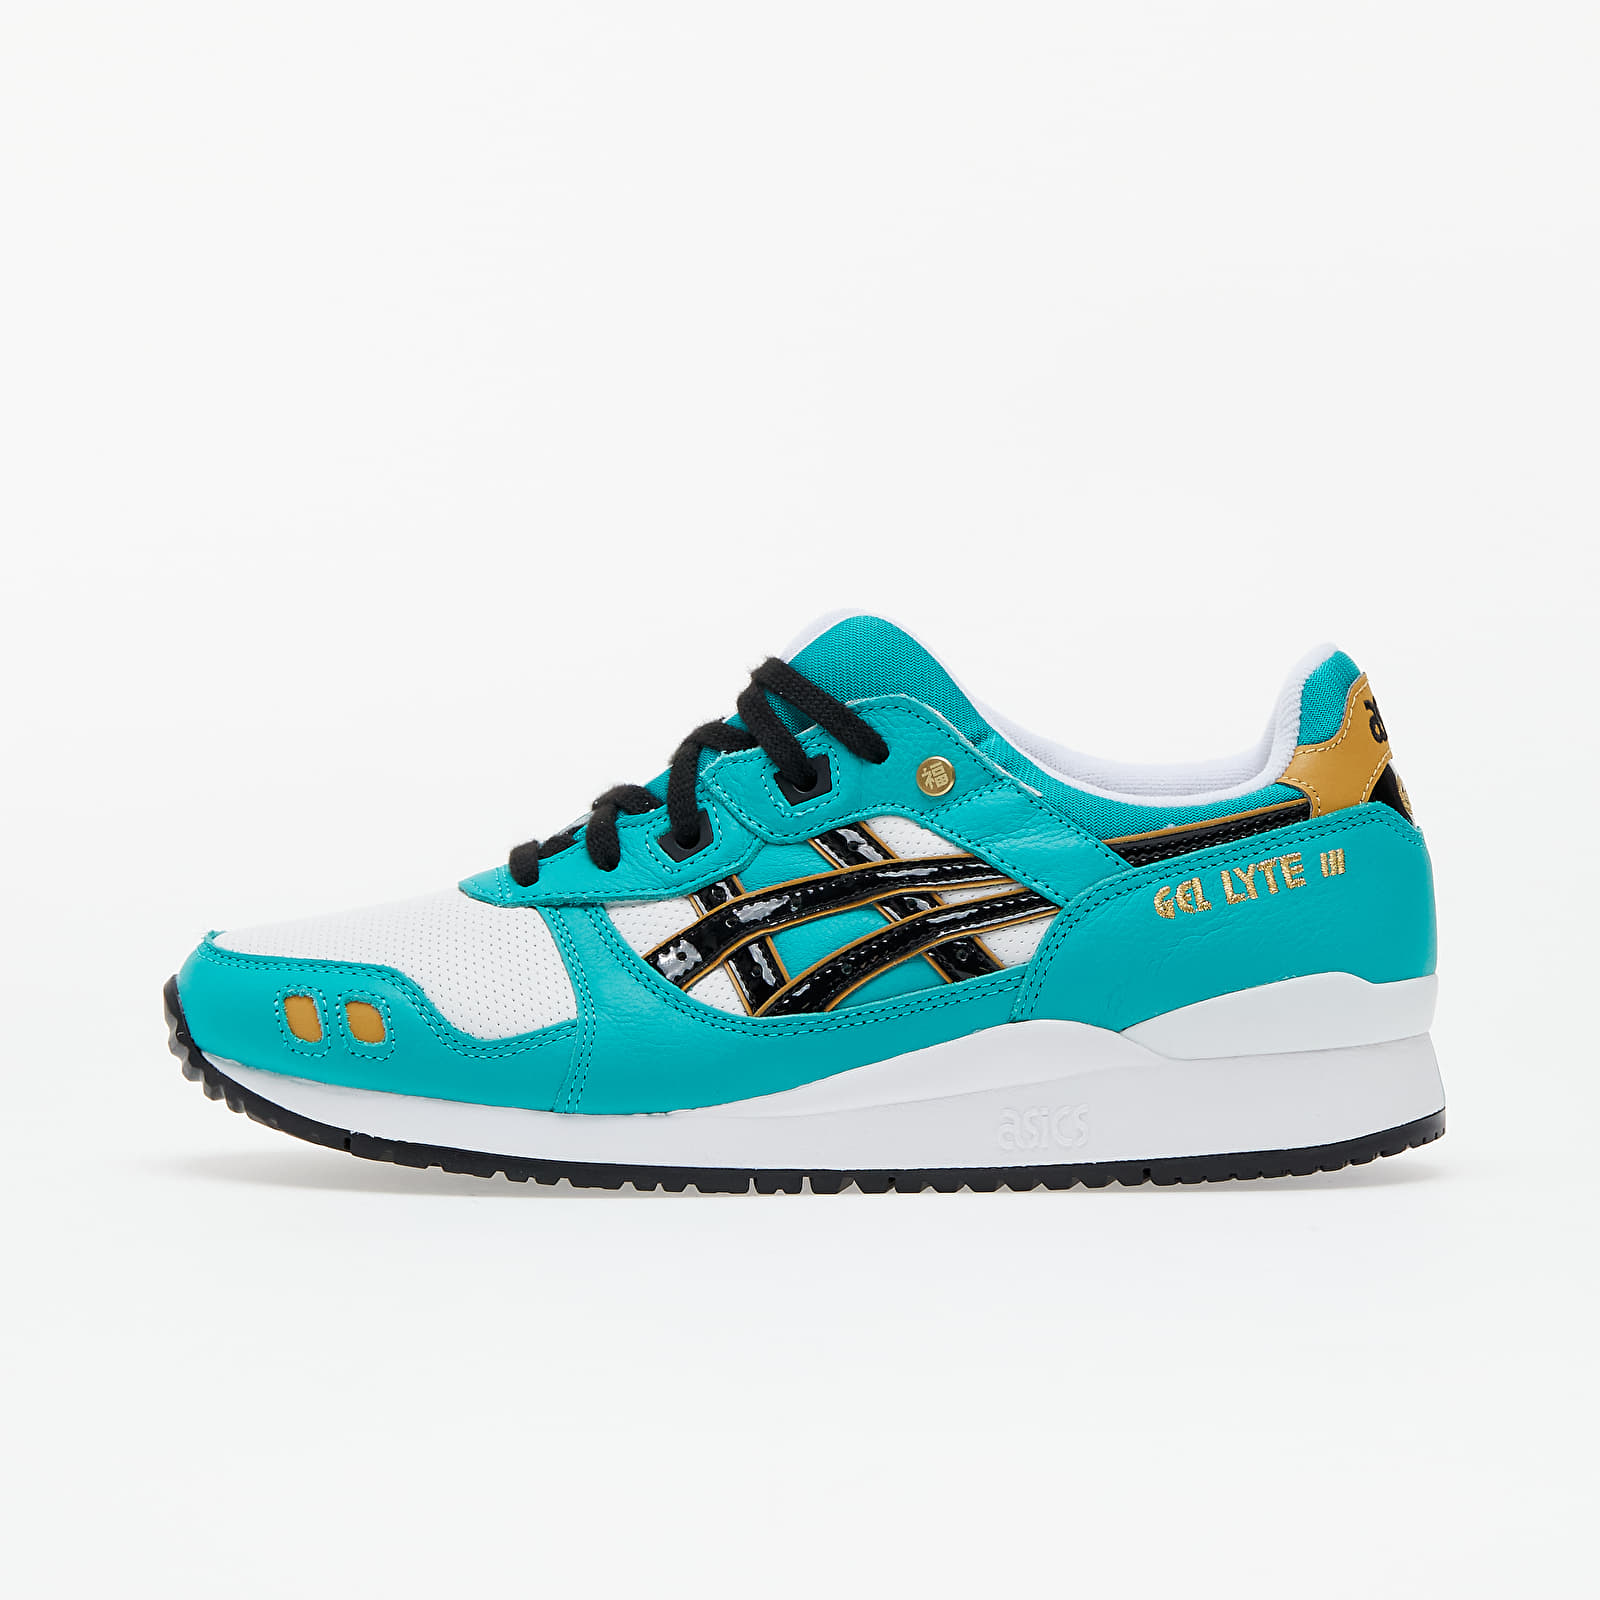 Asics Gel-Lyte III OG Baltic Jewel/ Black EUR 42.5